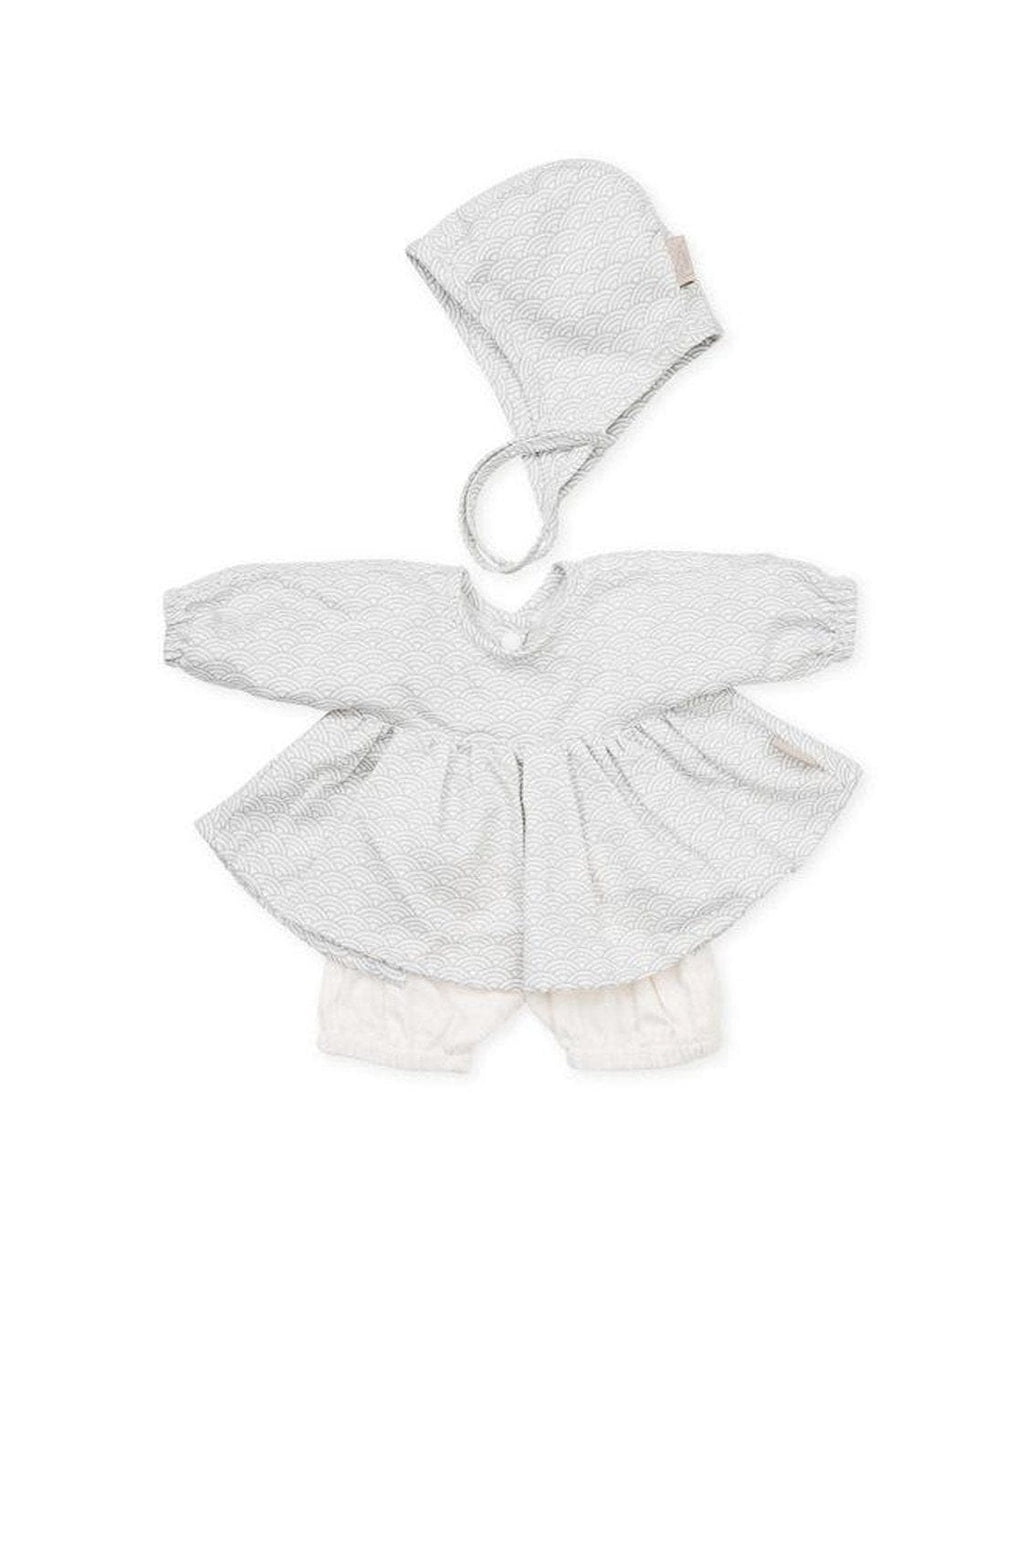 CAM CAM Doll's Clothing Set & Bonnet Grey Wave - Hello Little Birdie